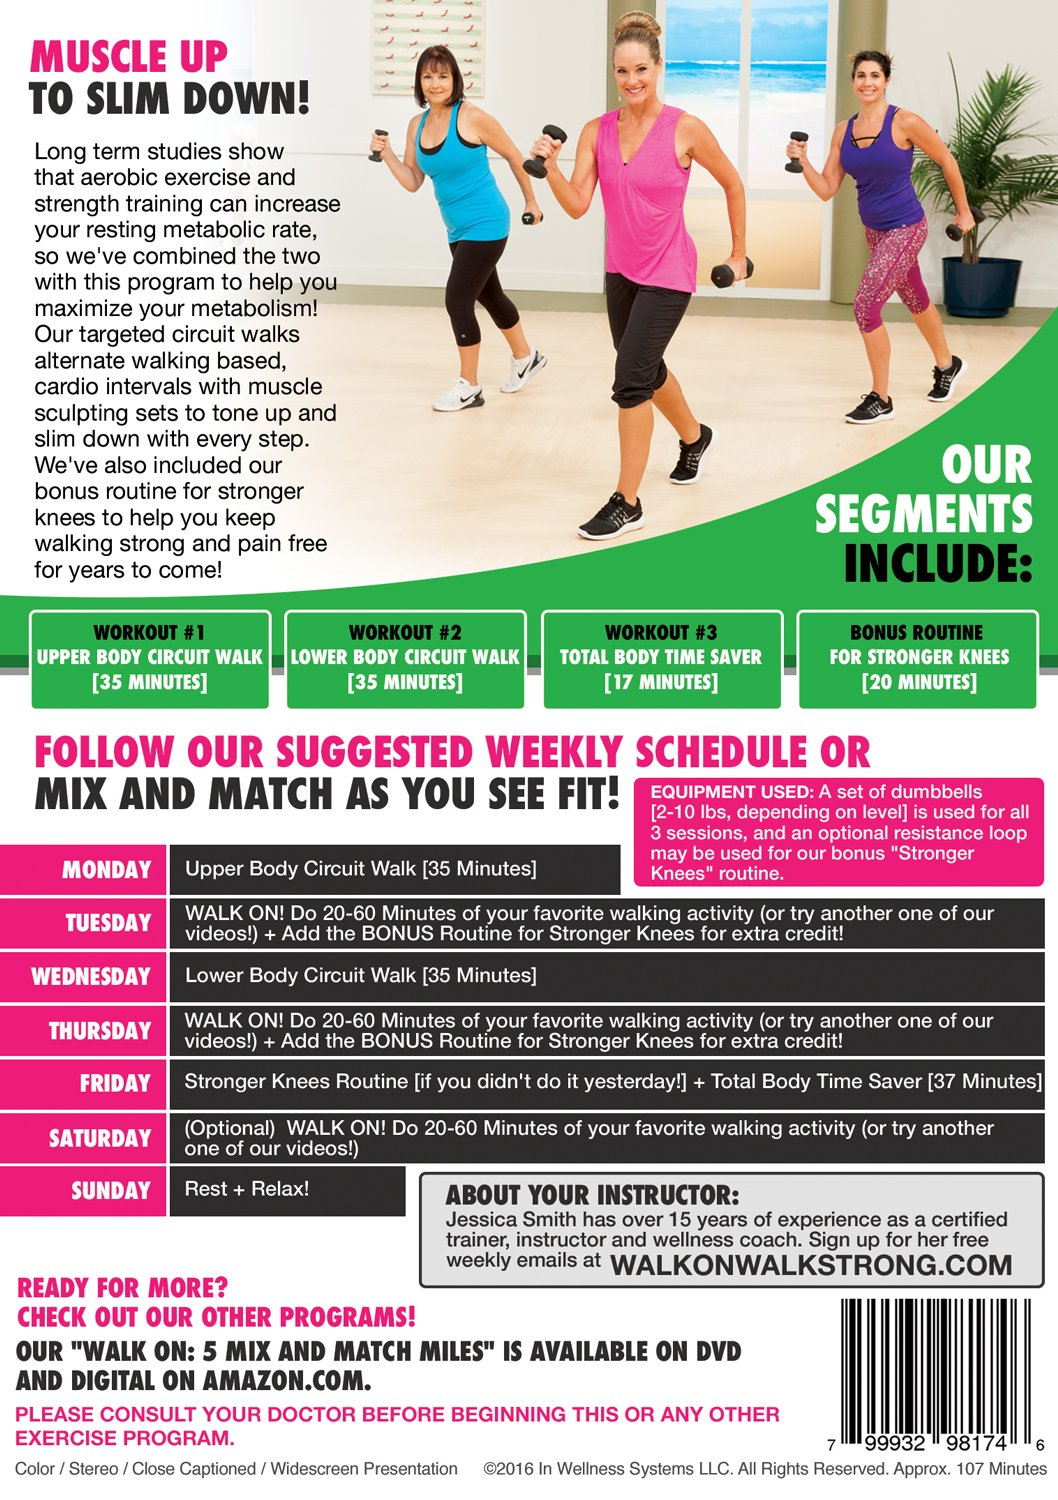 Walk On Metabolism Booster With Jessica Smith At Body Weight Exercises For Women Fullbody Circuit Workout Home Strength Training Beginner Intermediate Level Movies